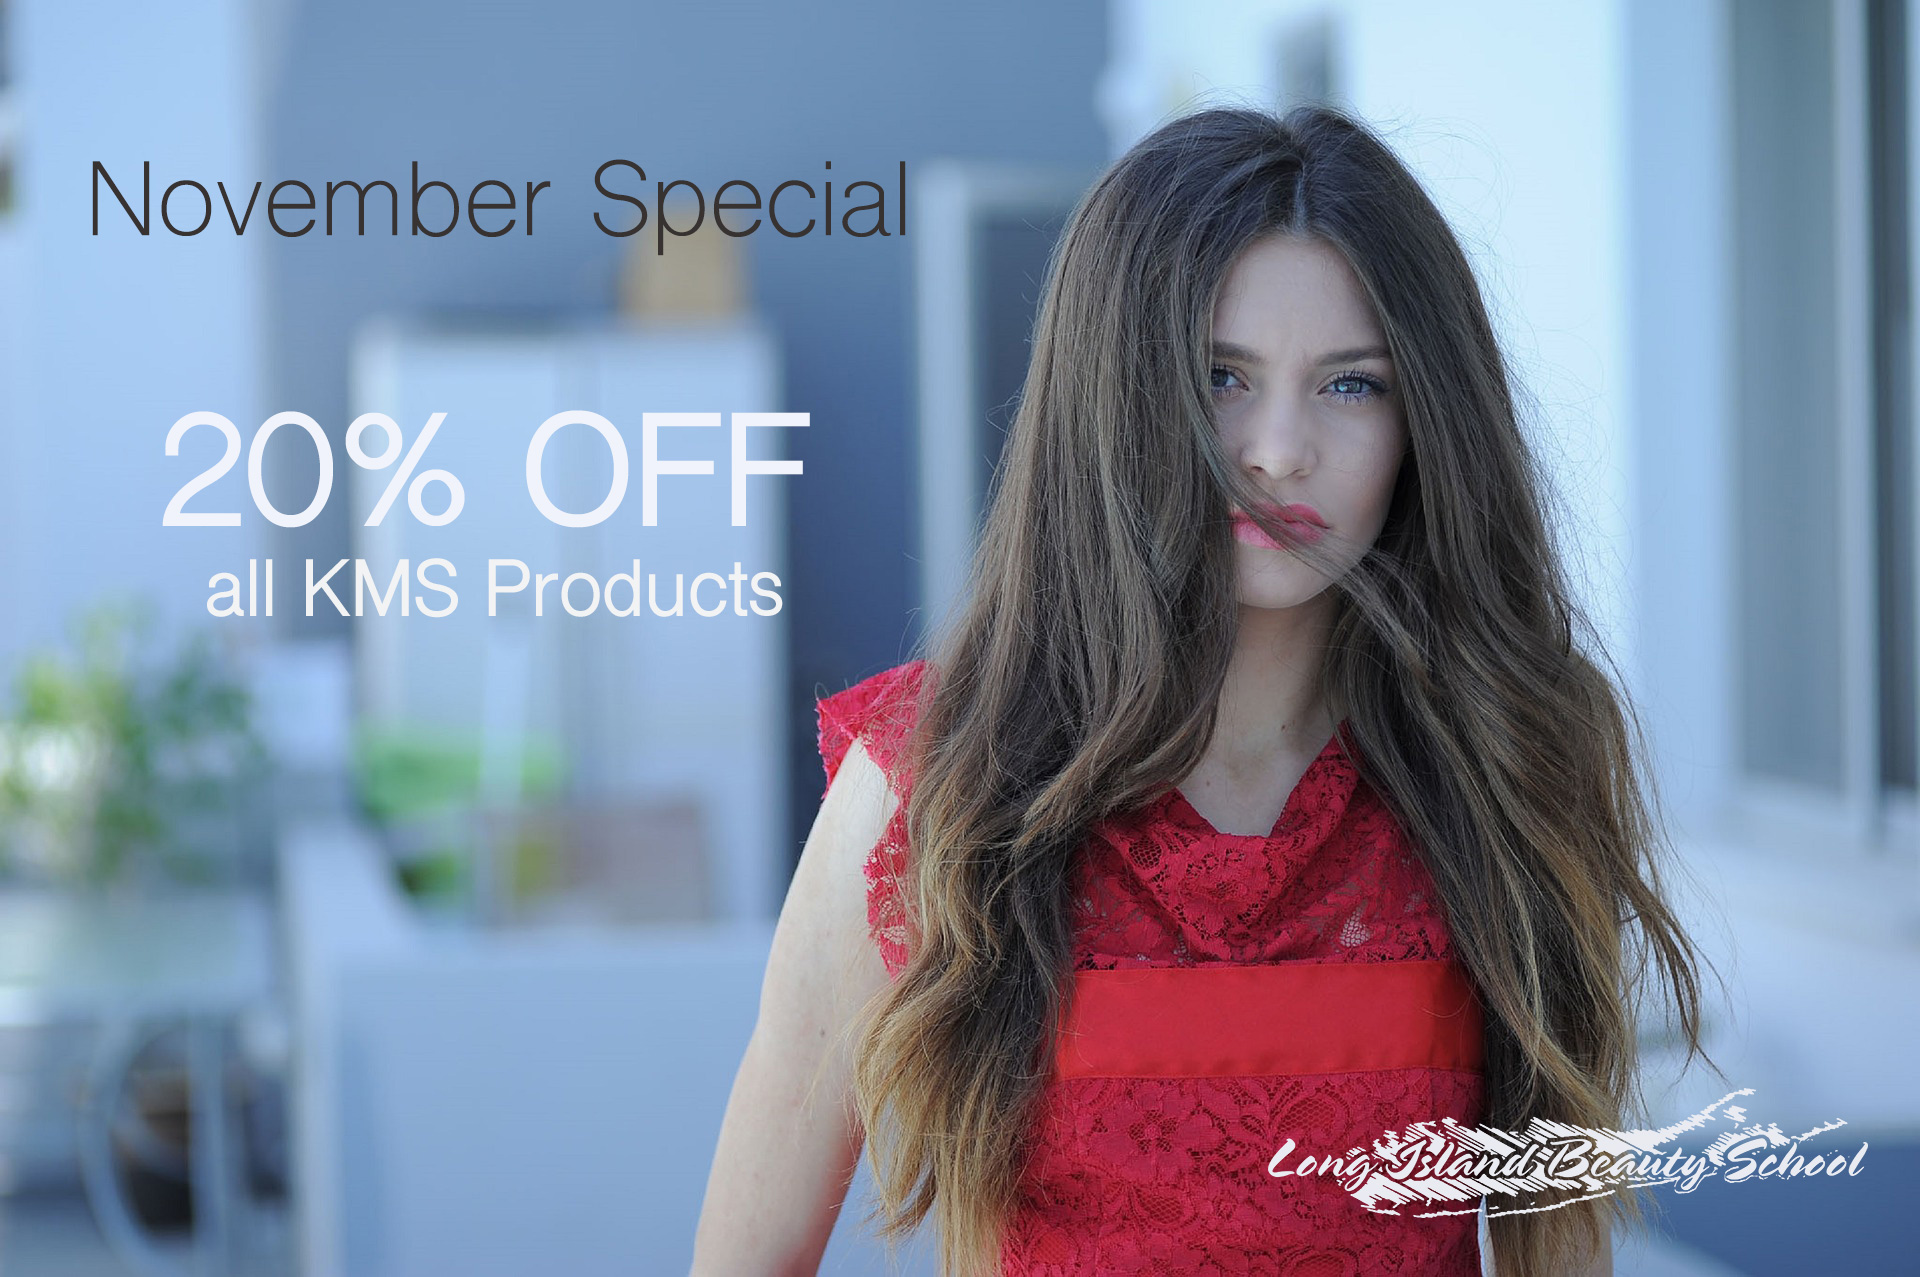 20% off kms products